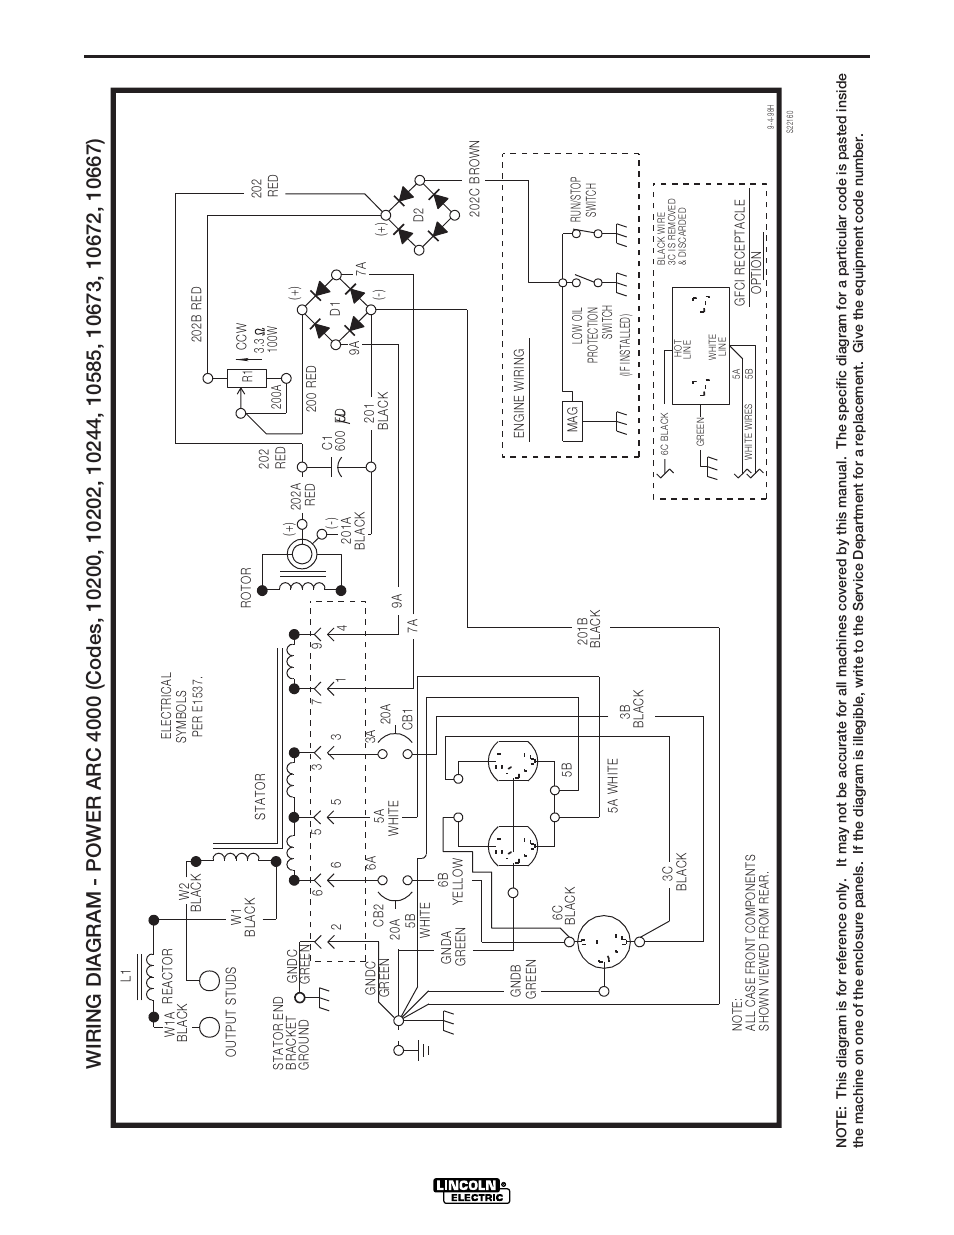 Arc Wiring Diagram Will Be A Thing Lincoln Ranger 9 Diagrams Power 4000 Electric User Rh Manualsdir Com Ac